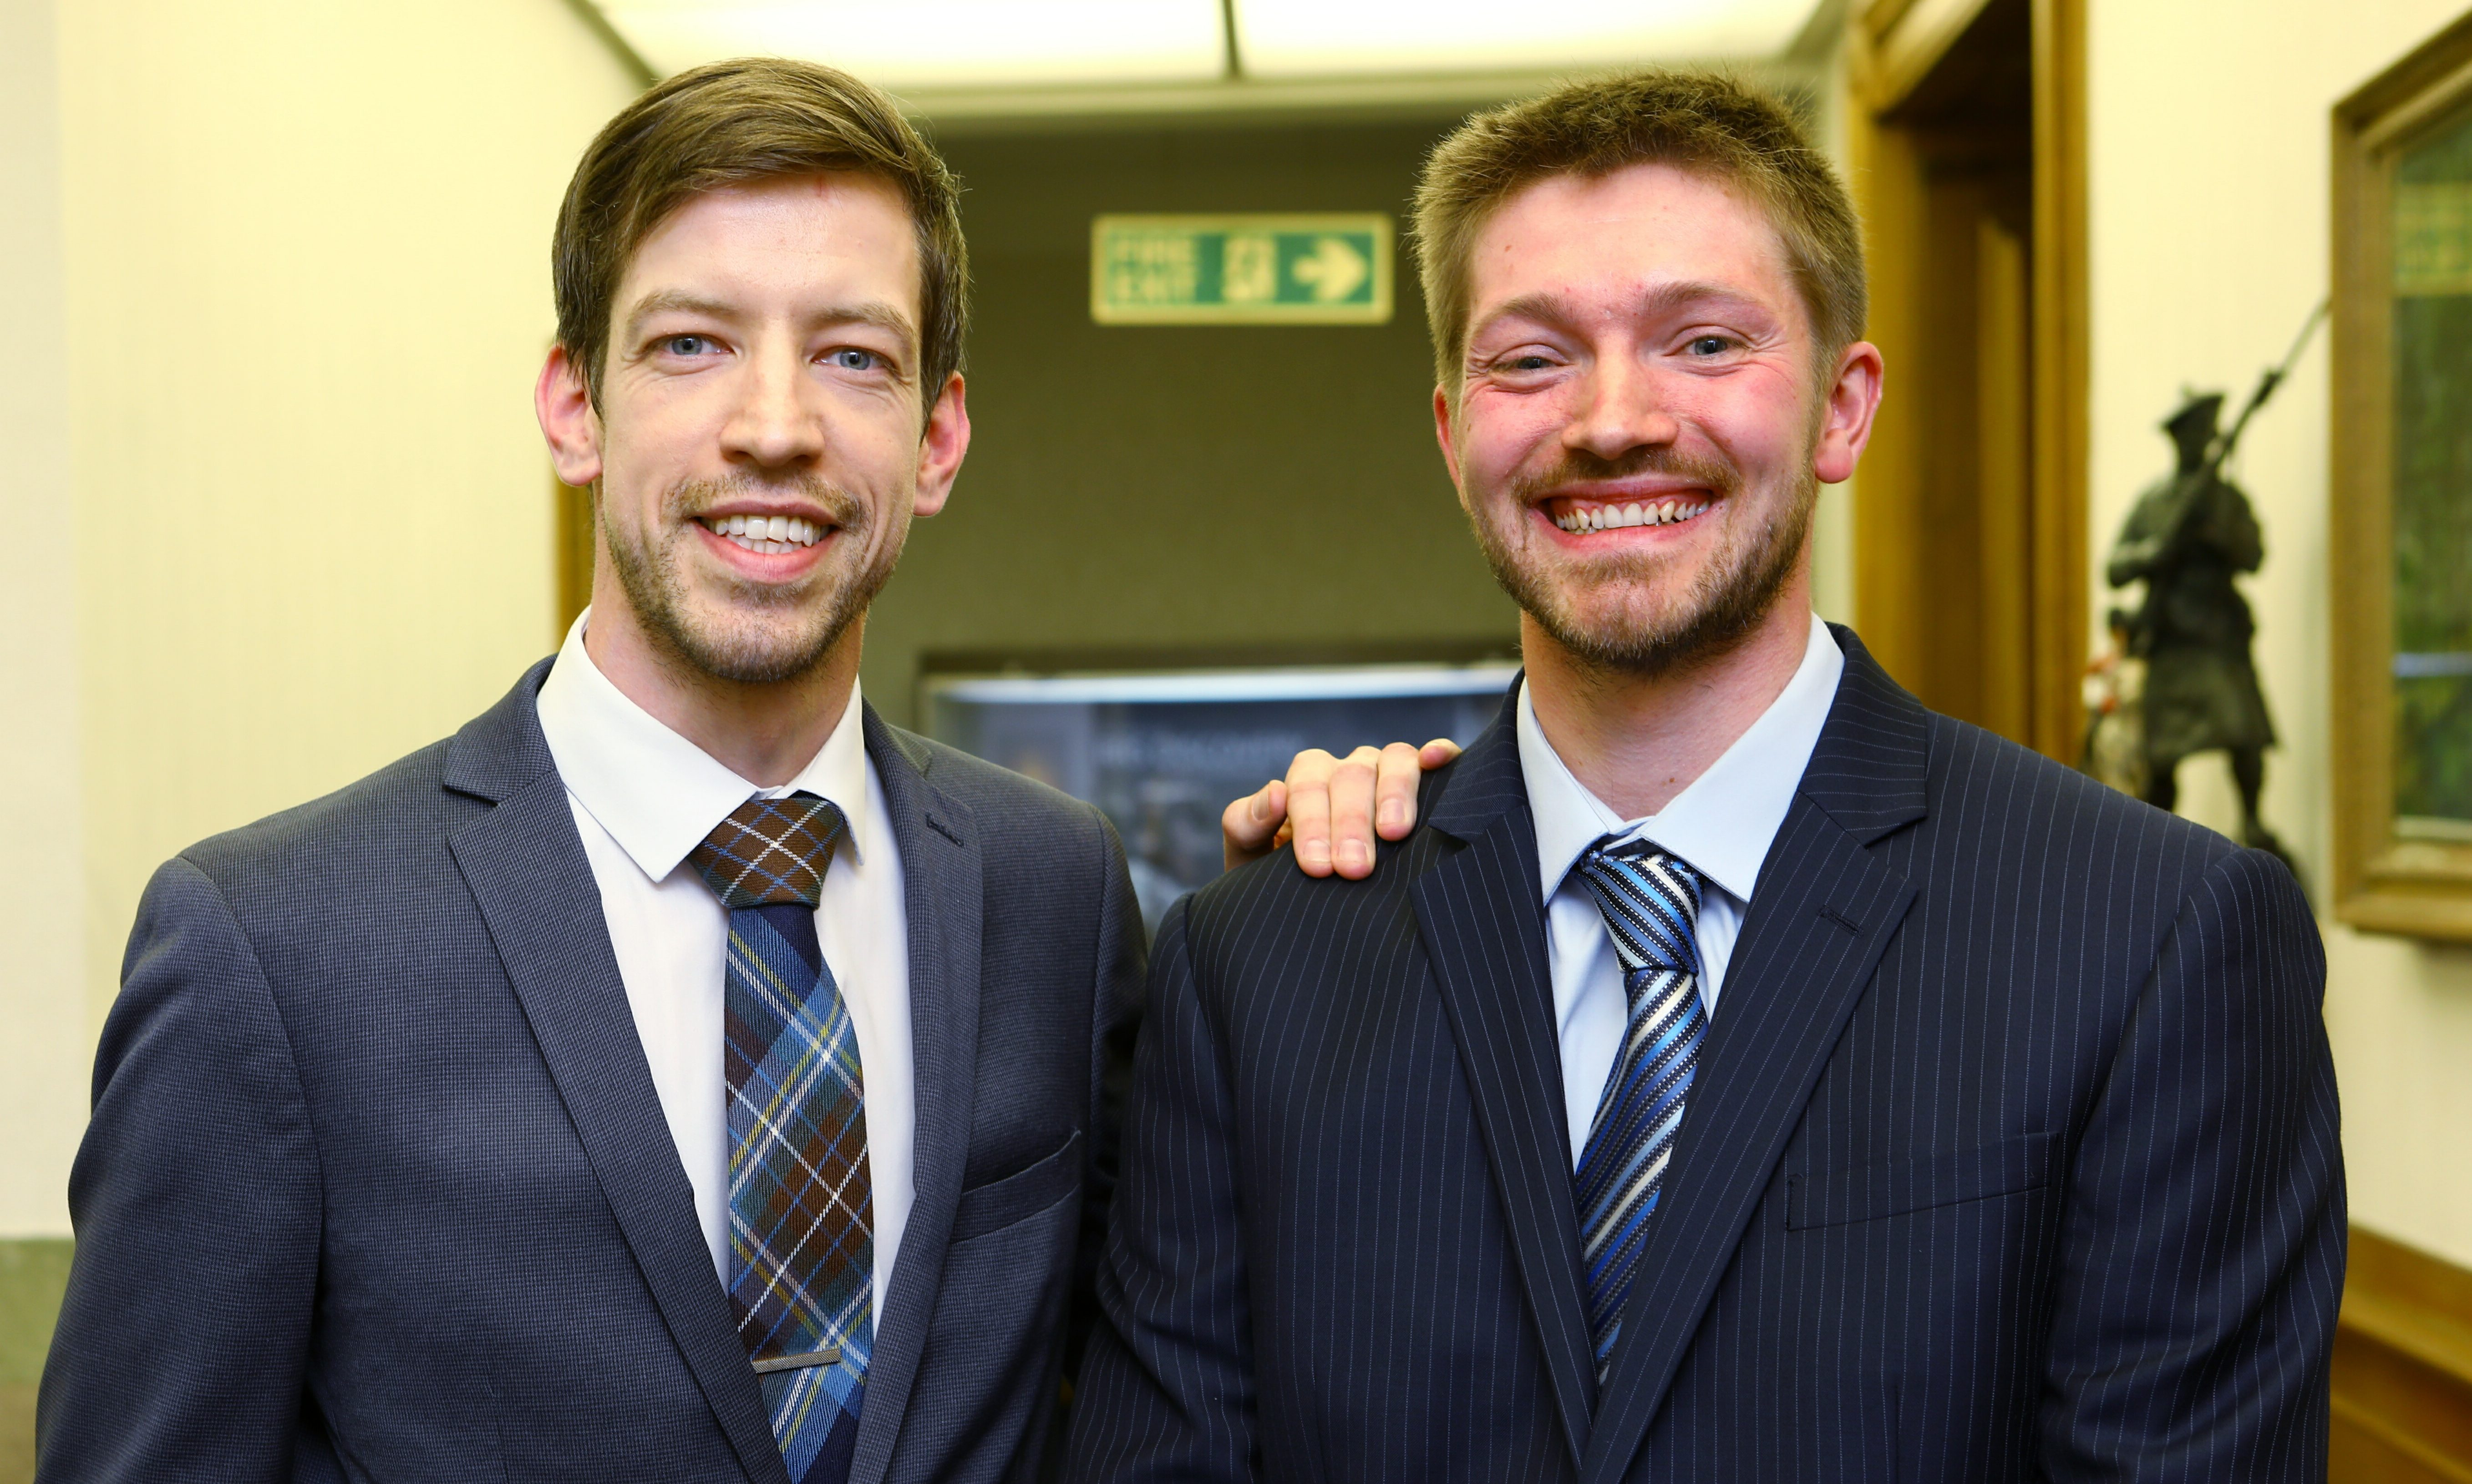 Steven Rome (right) with council leader John Alexander after his election victory.